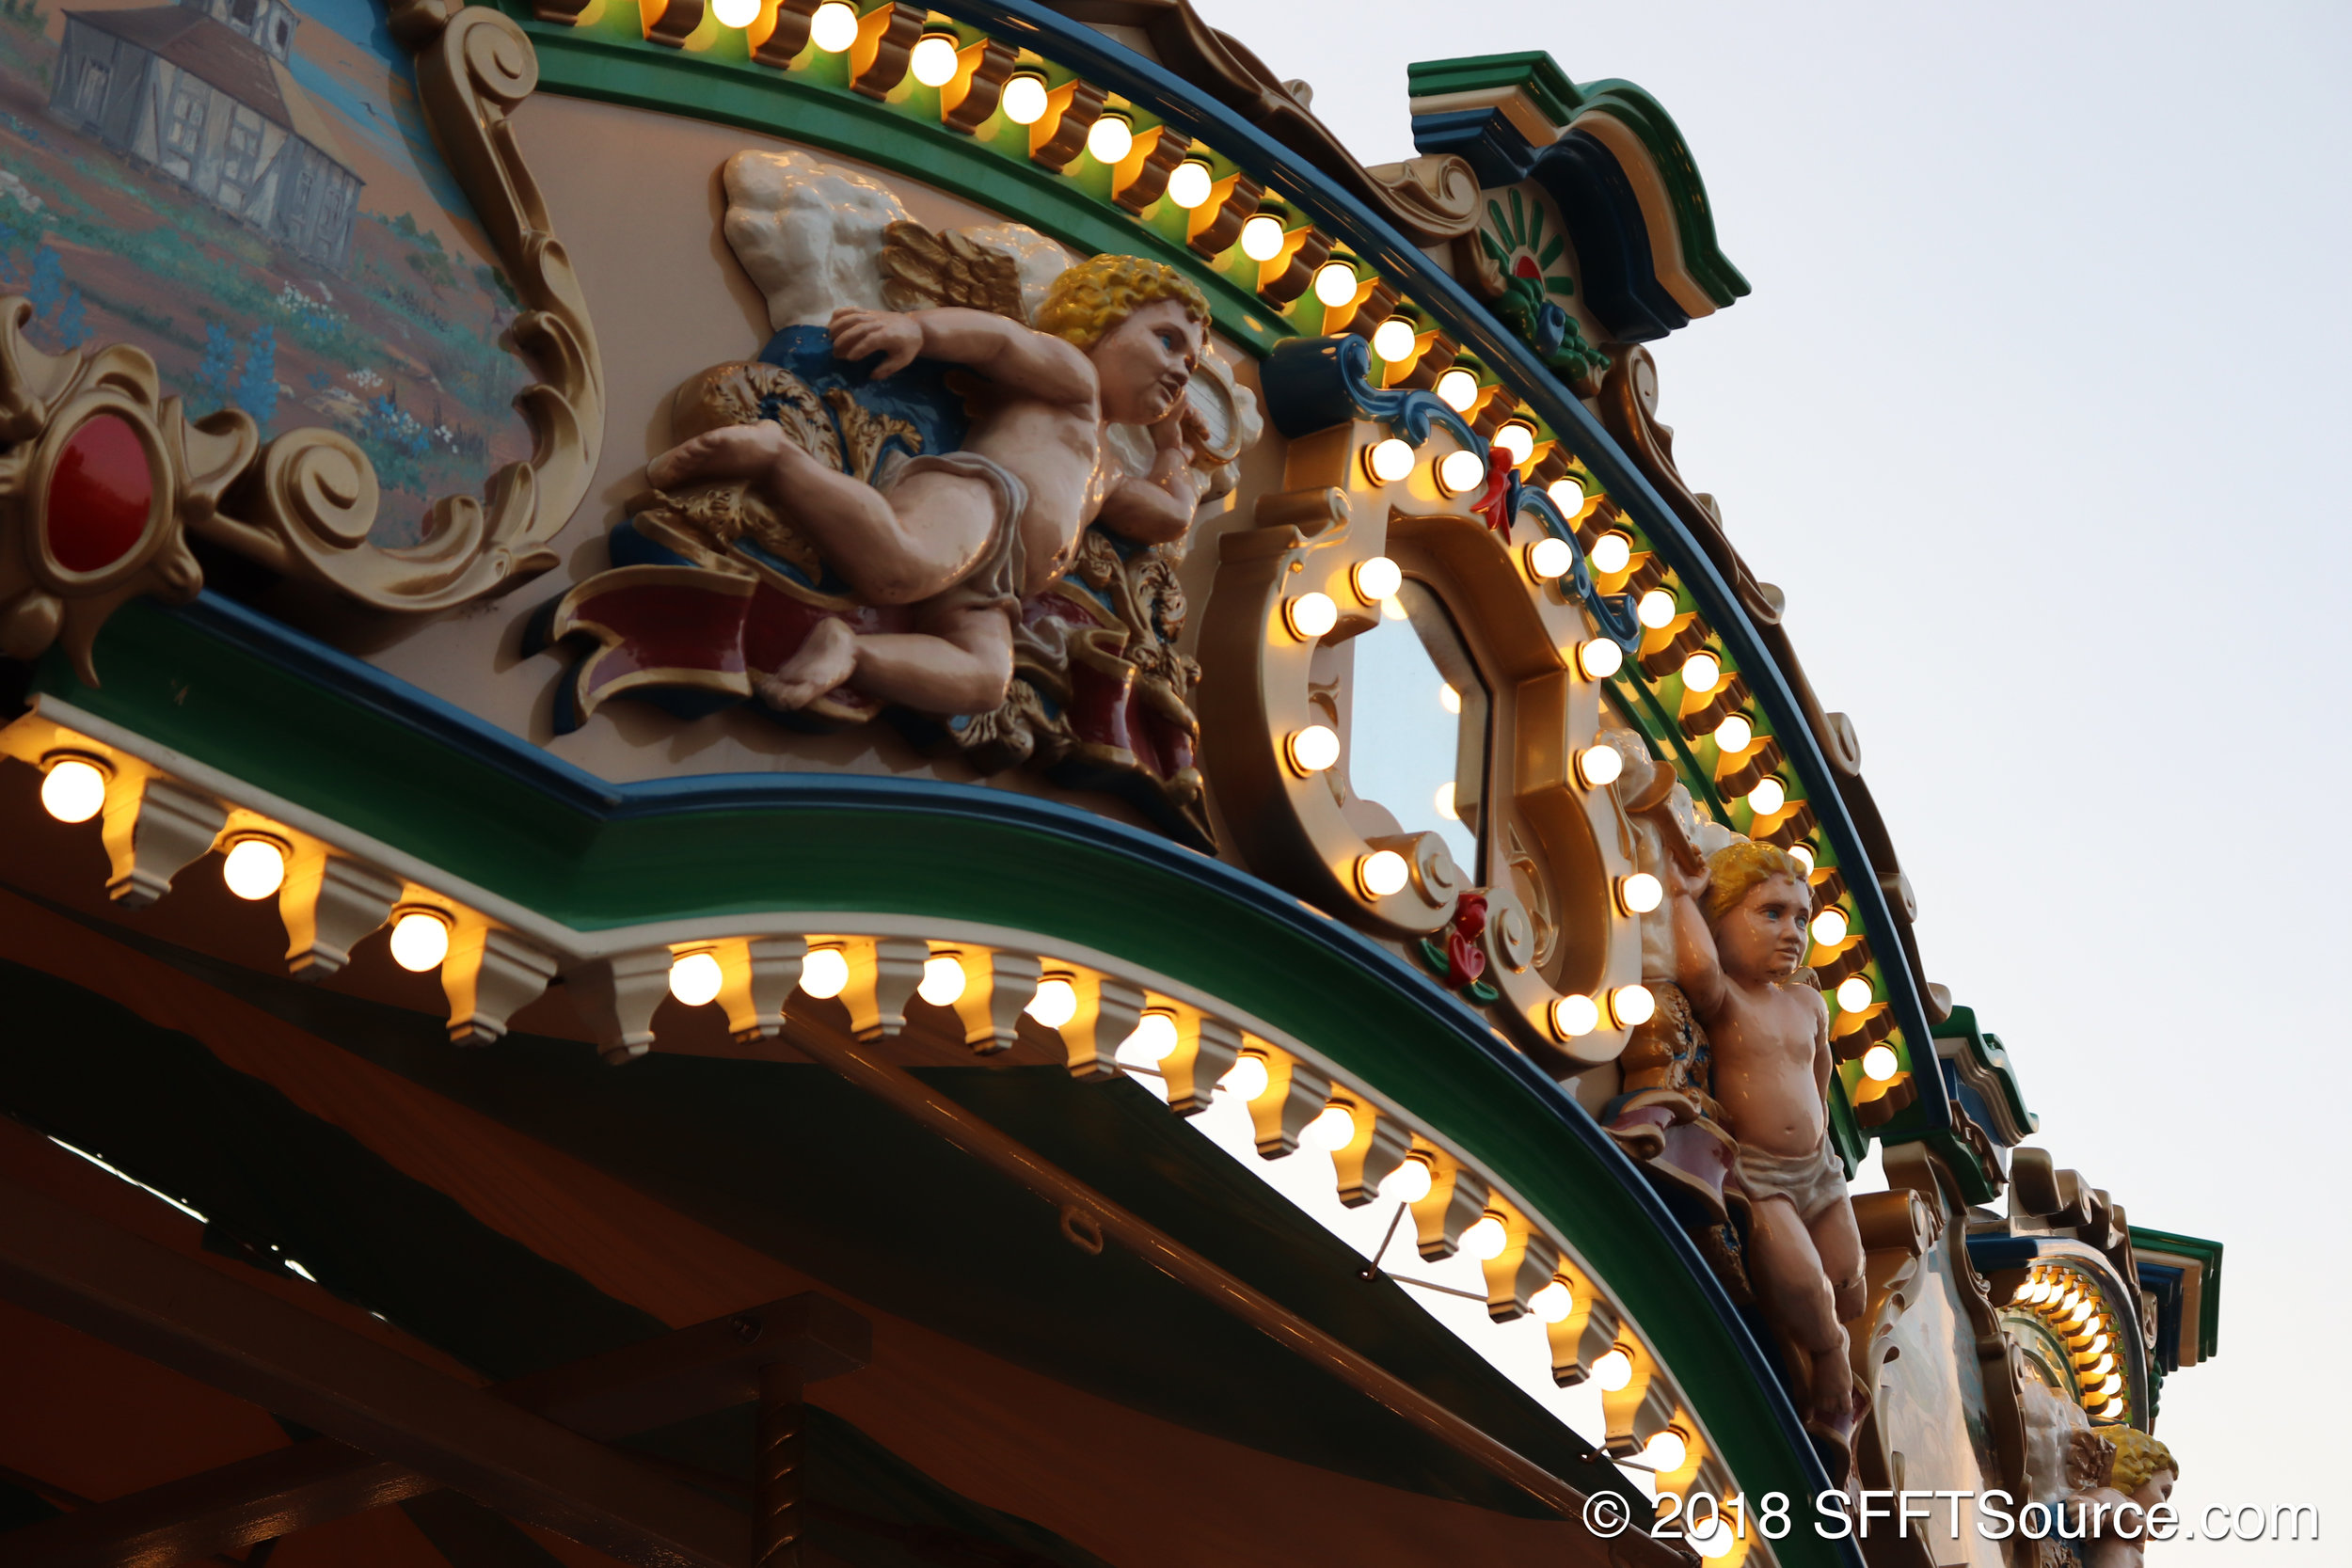 Grand Carousel features many points of detail.